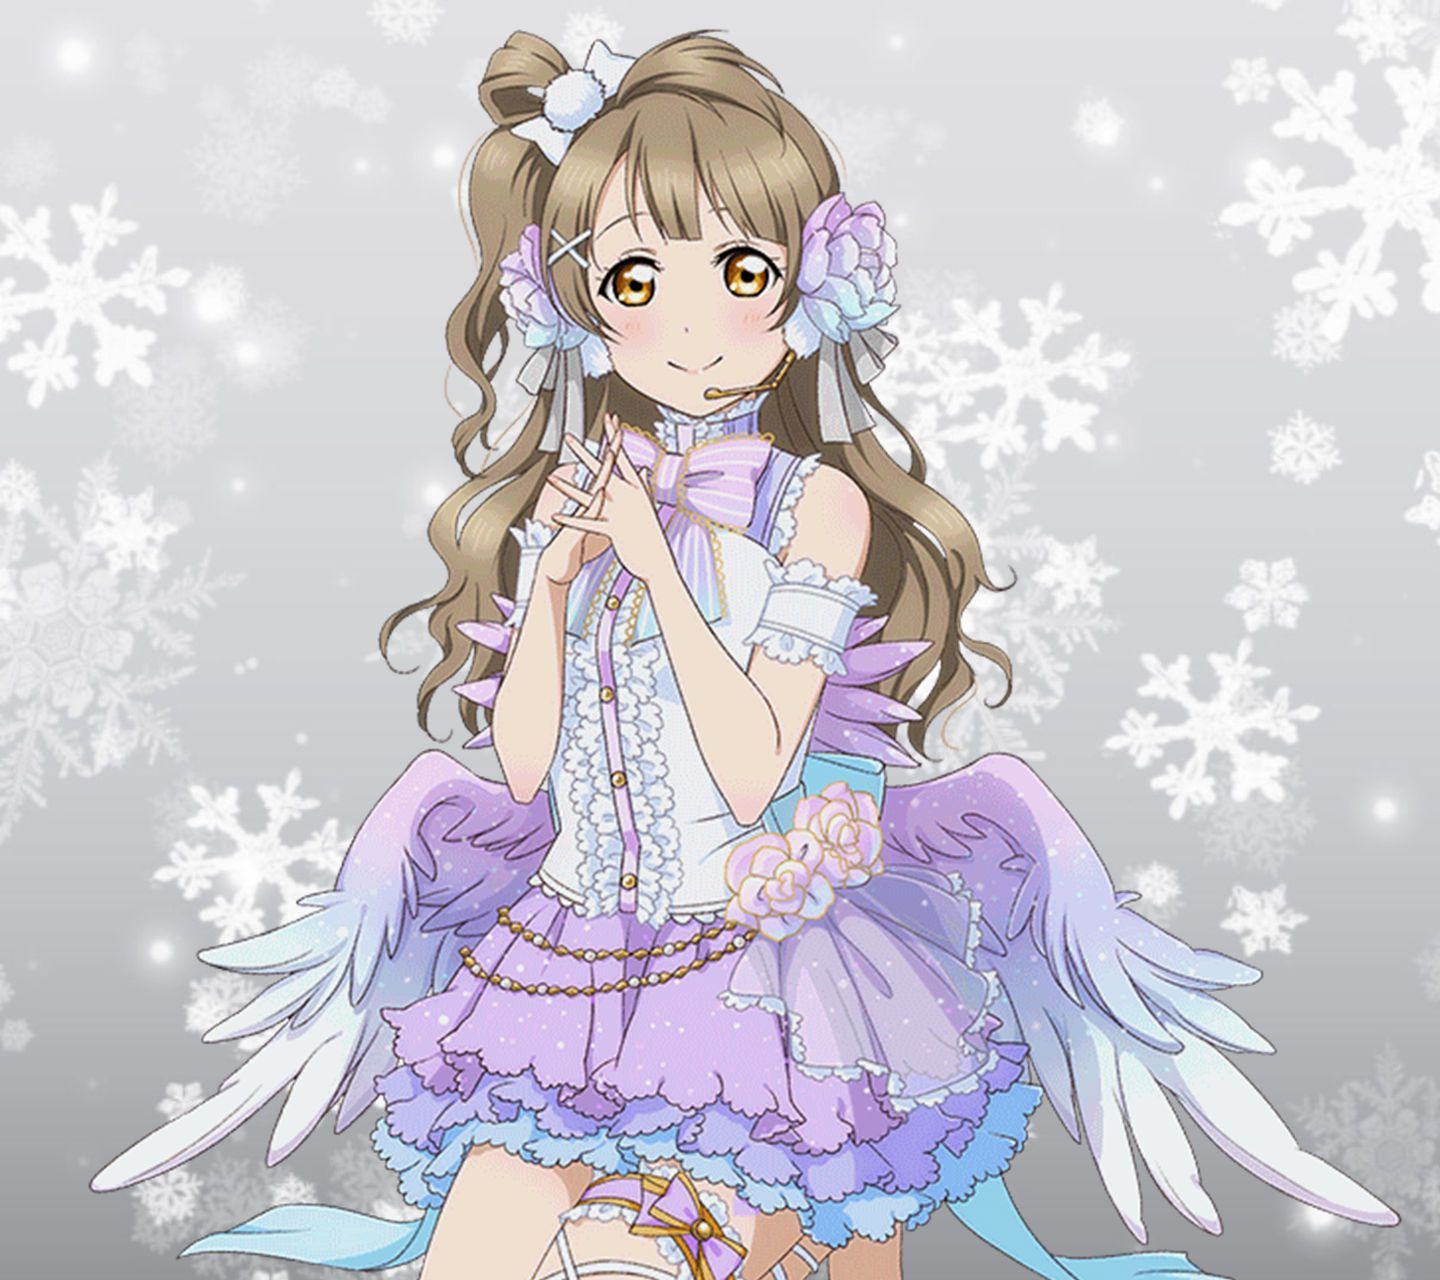 28301_lovelive_Android.jpg (1440×1280)